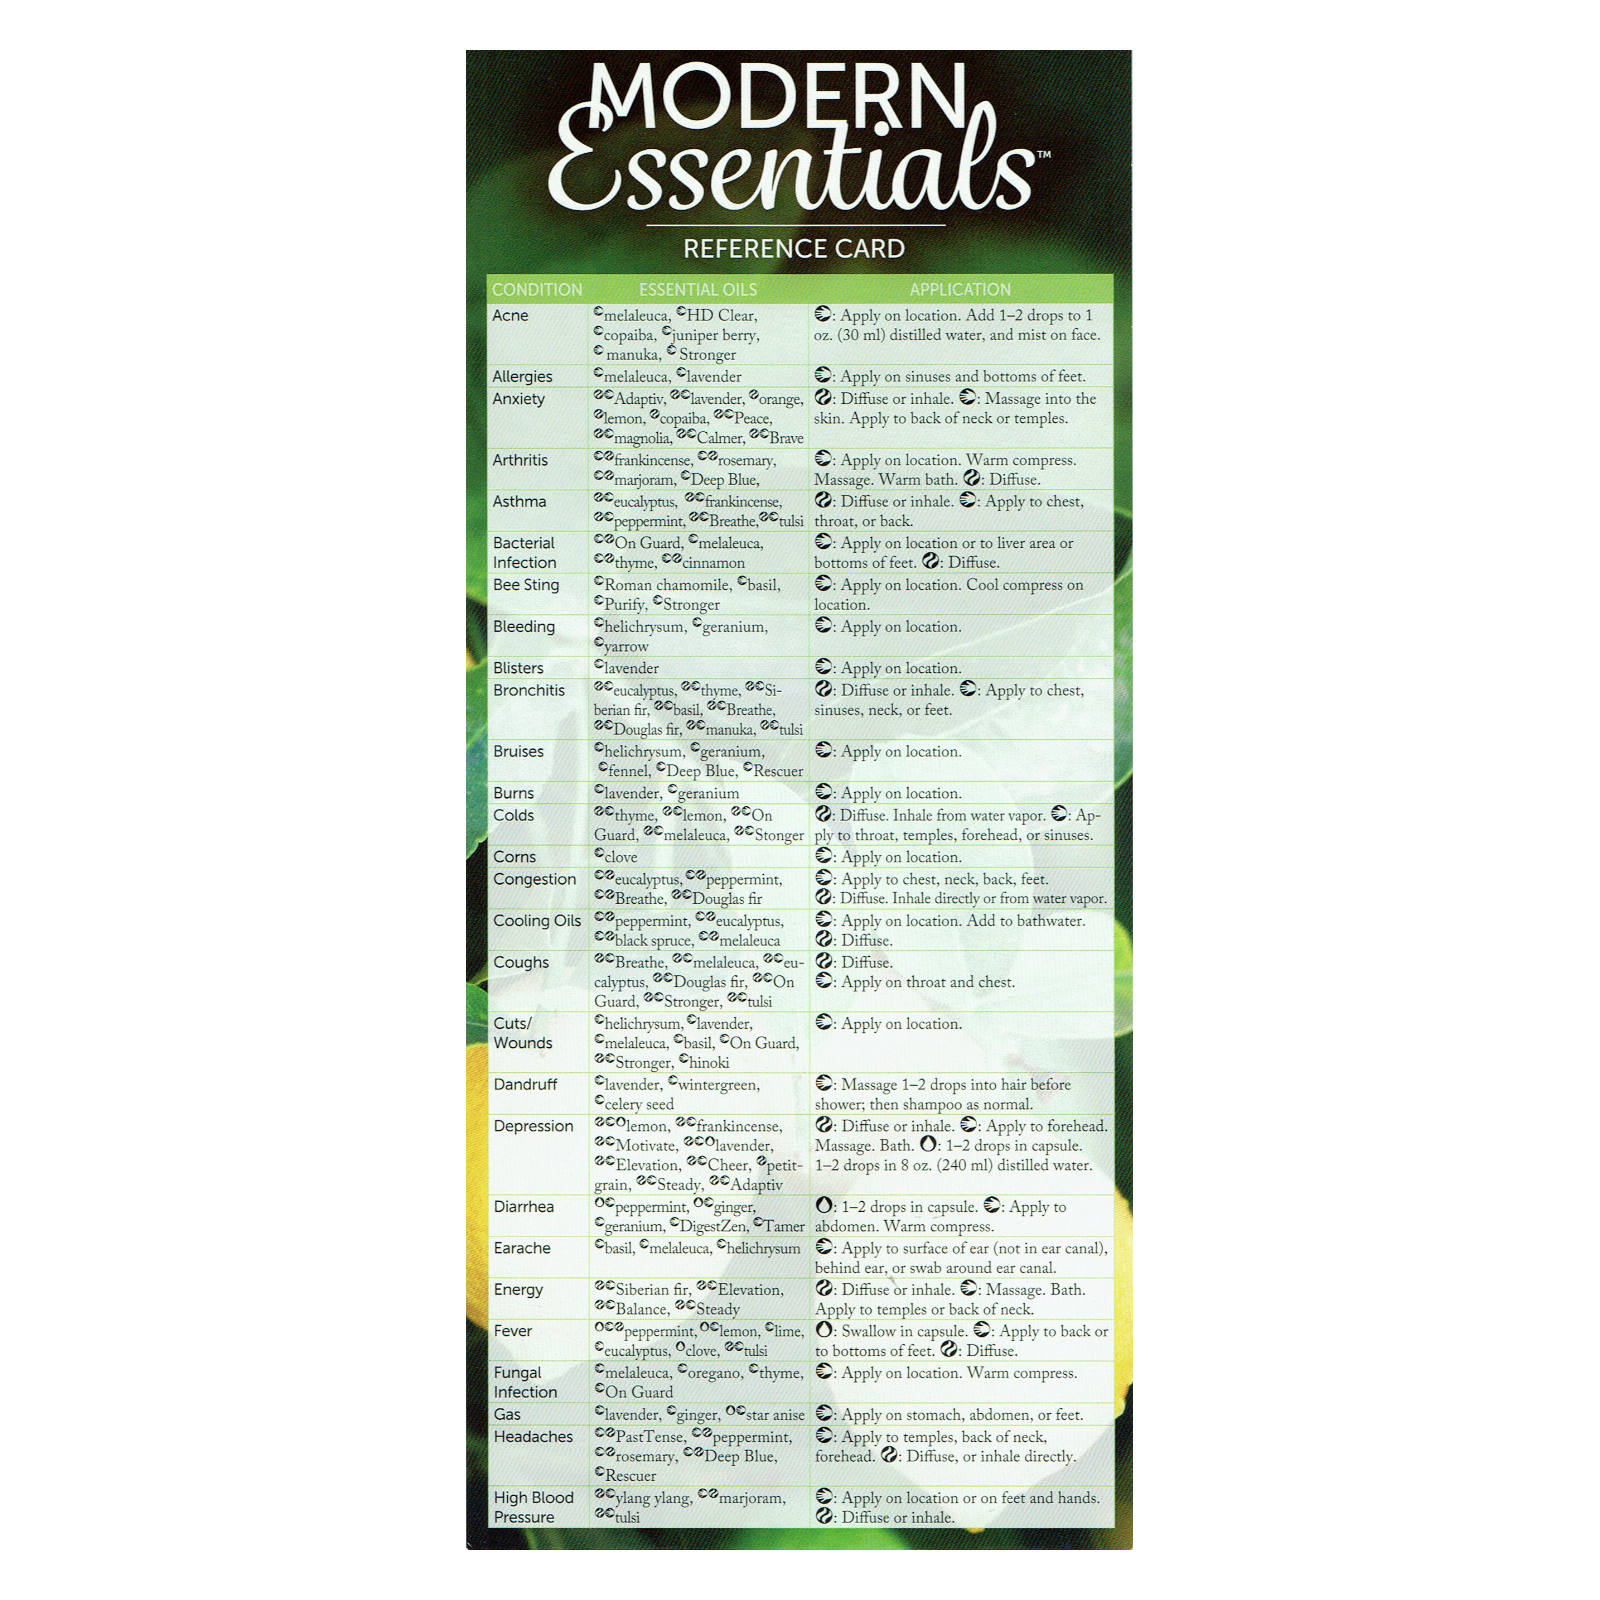 Modern Essentials Reference Cards, 3th Edition (Pack of 3